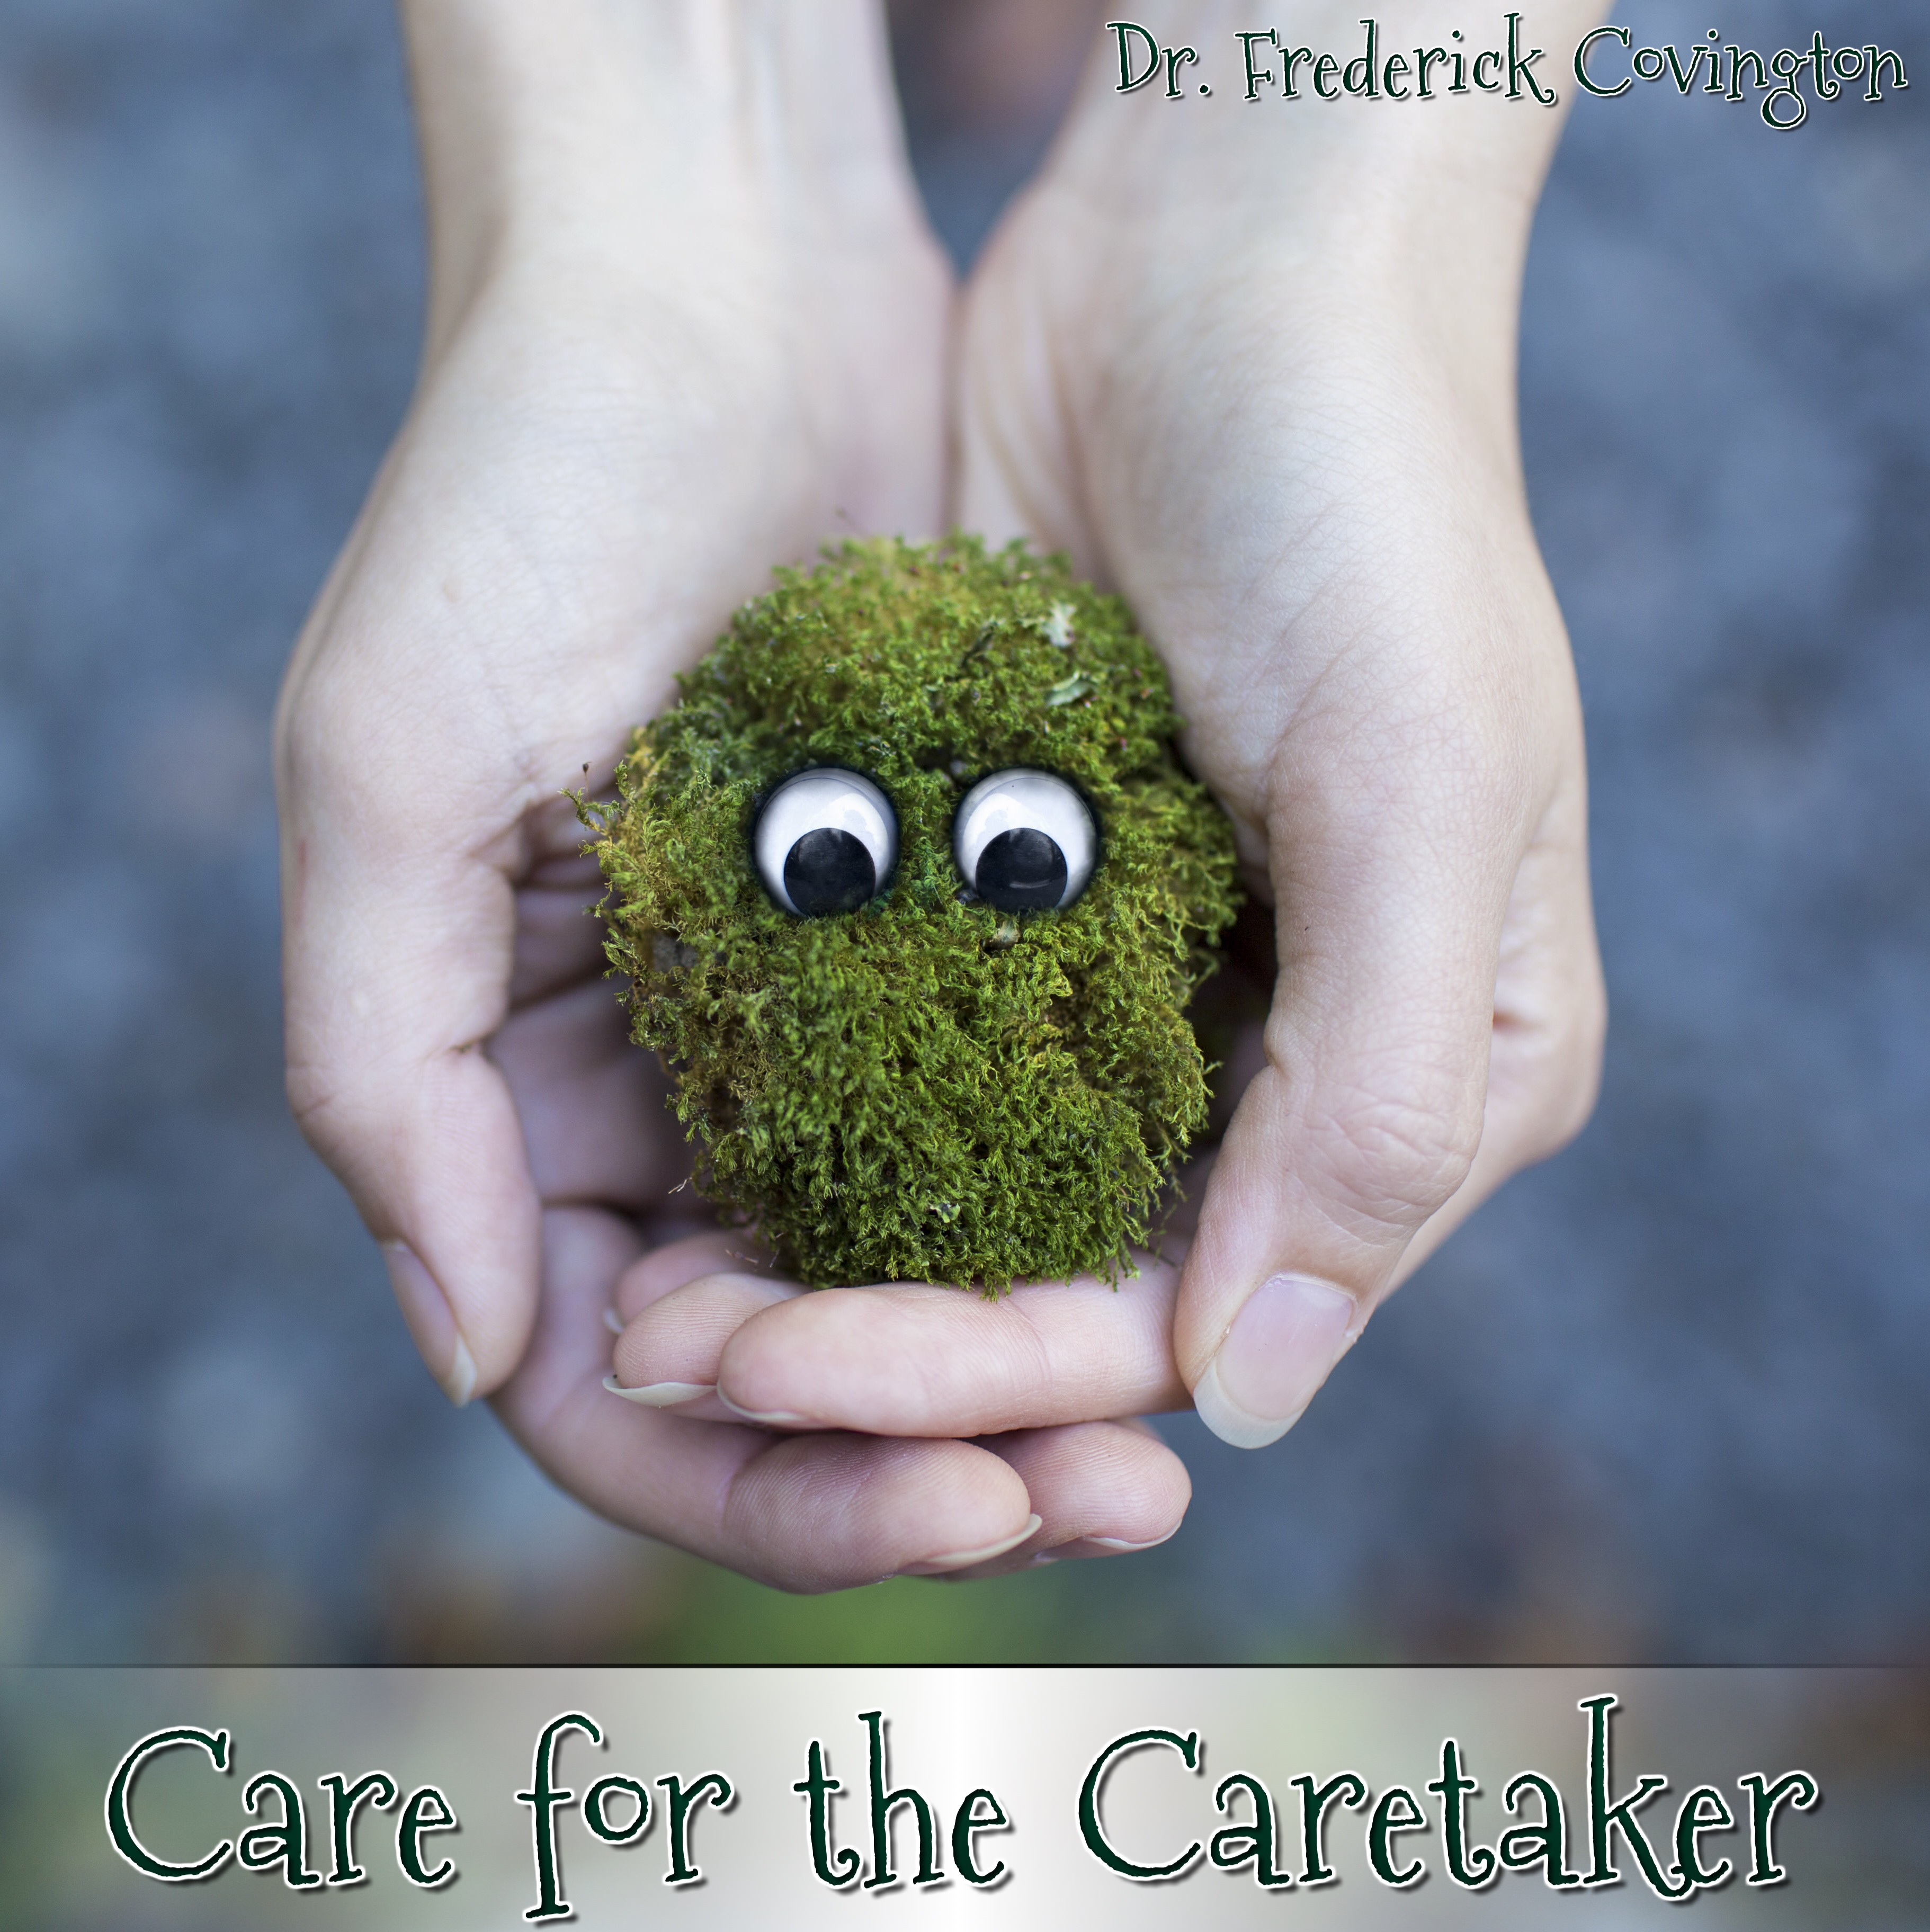 Care for the Caretaker